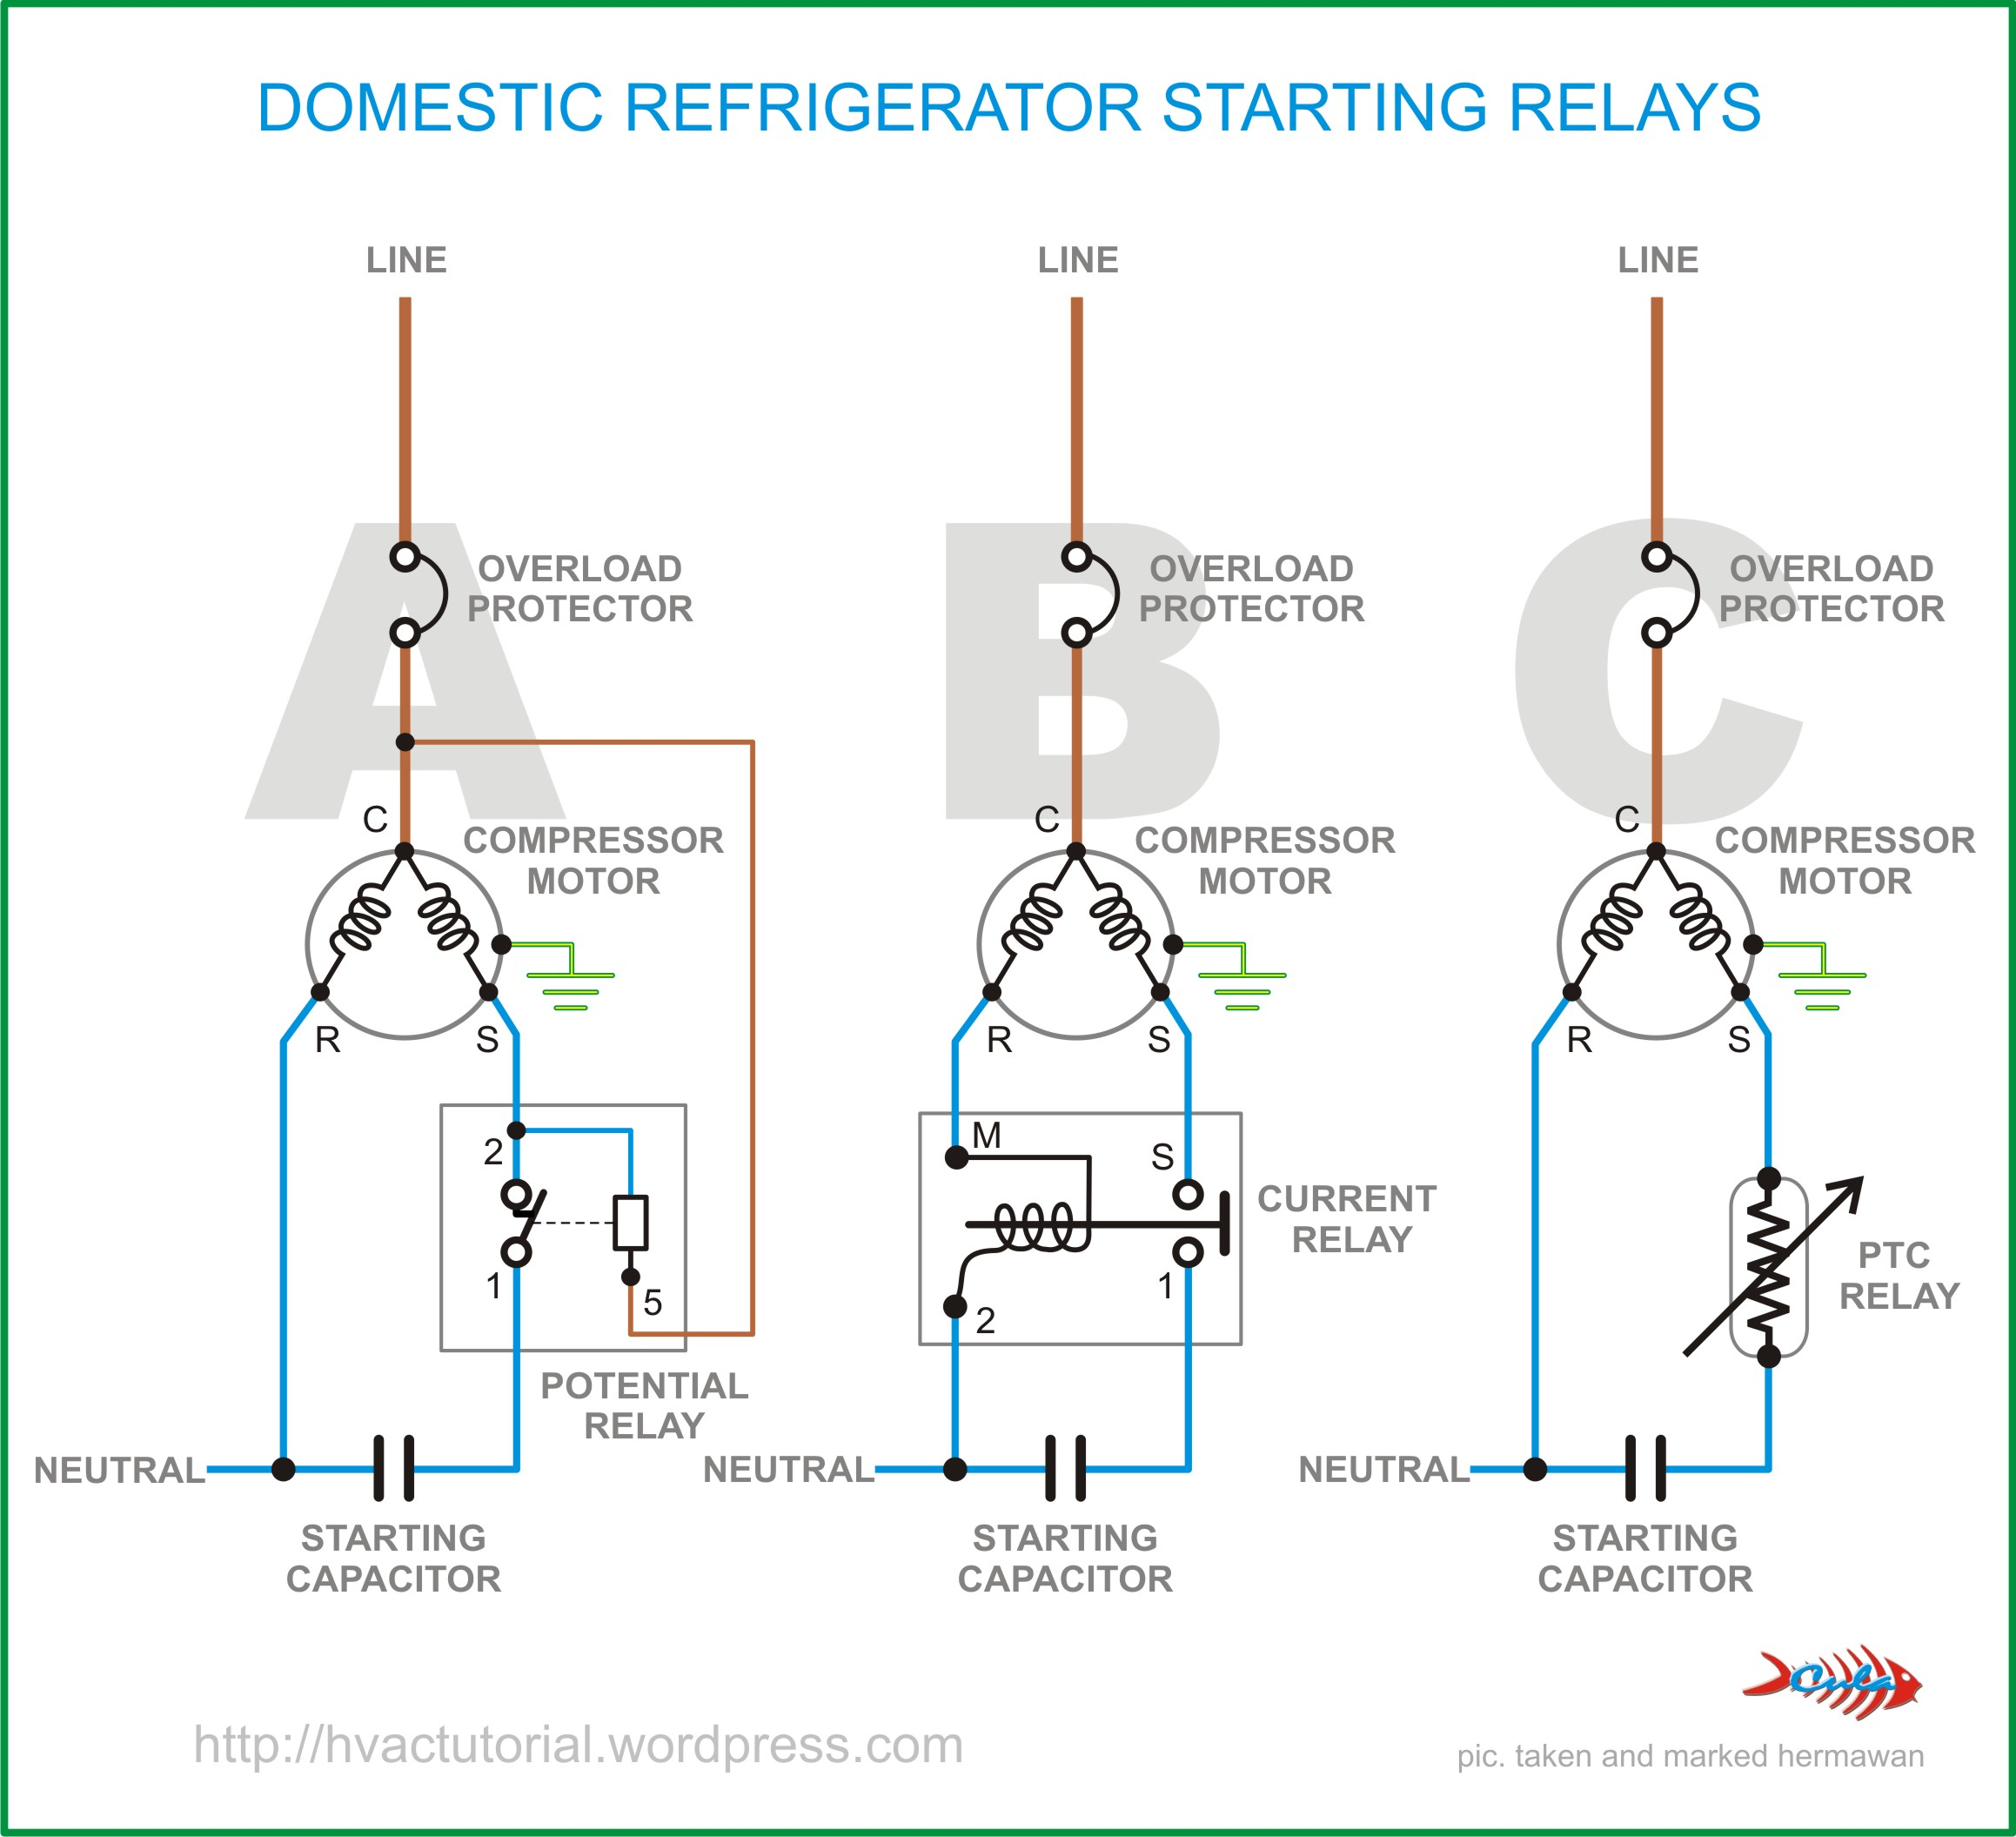 refrigerator start relay wiring diagram interpretation of circuit and diagrams domestic starting relays hermawan s blog refrigeration air conditioning systems